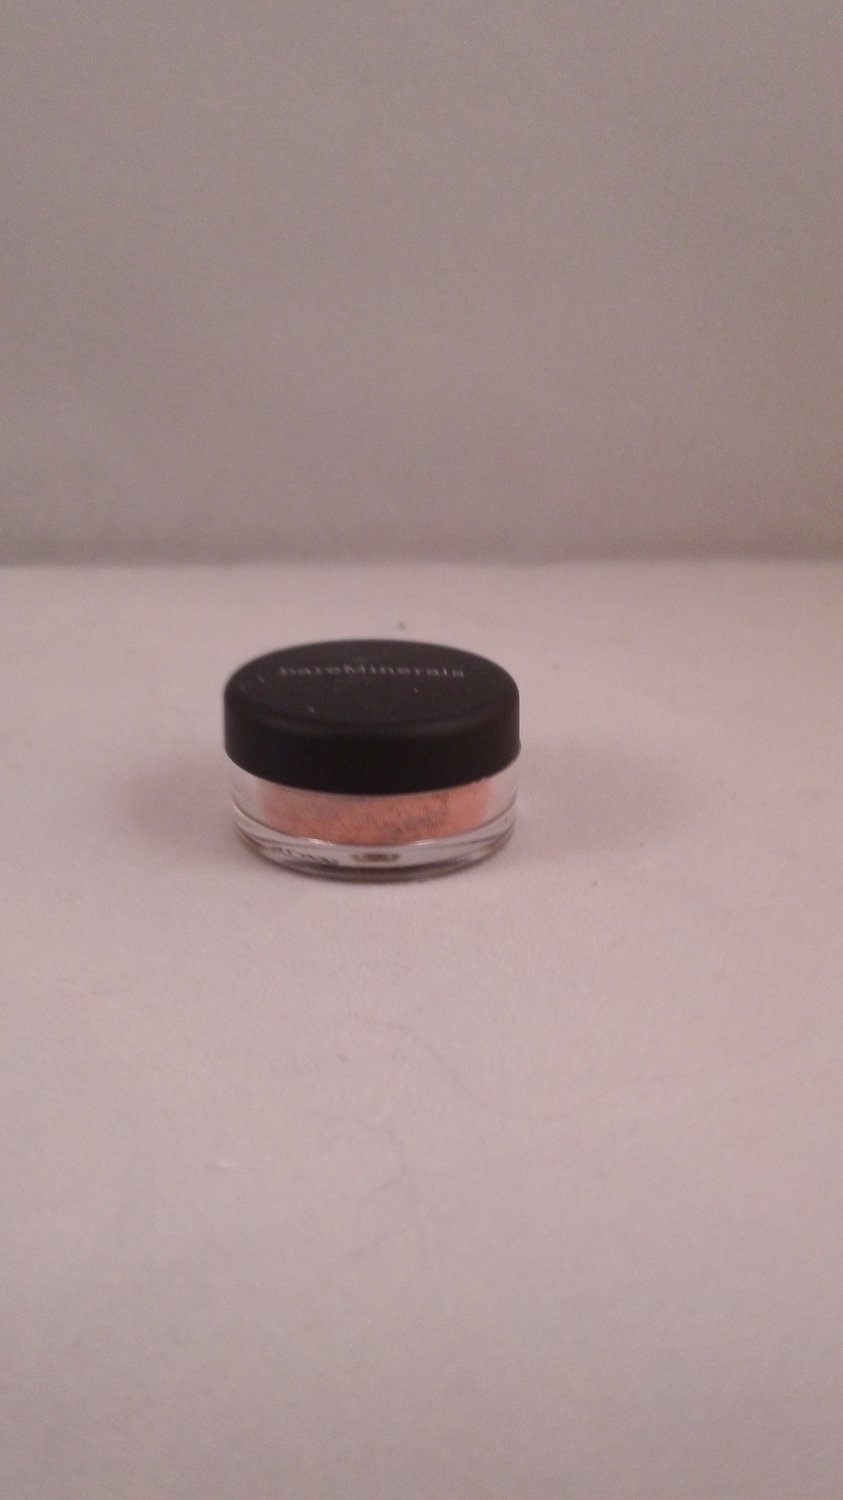 Bare Escentuals bareMinerals Mini Eyecolor Minerals Eye Shadow Overjoyed